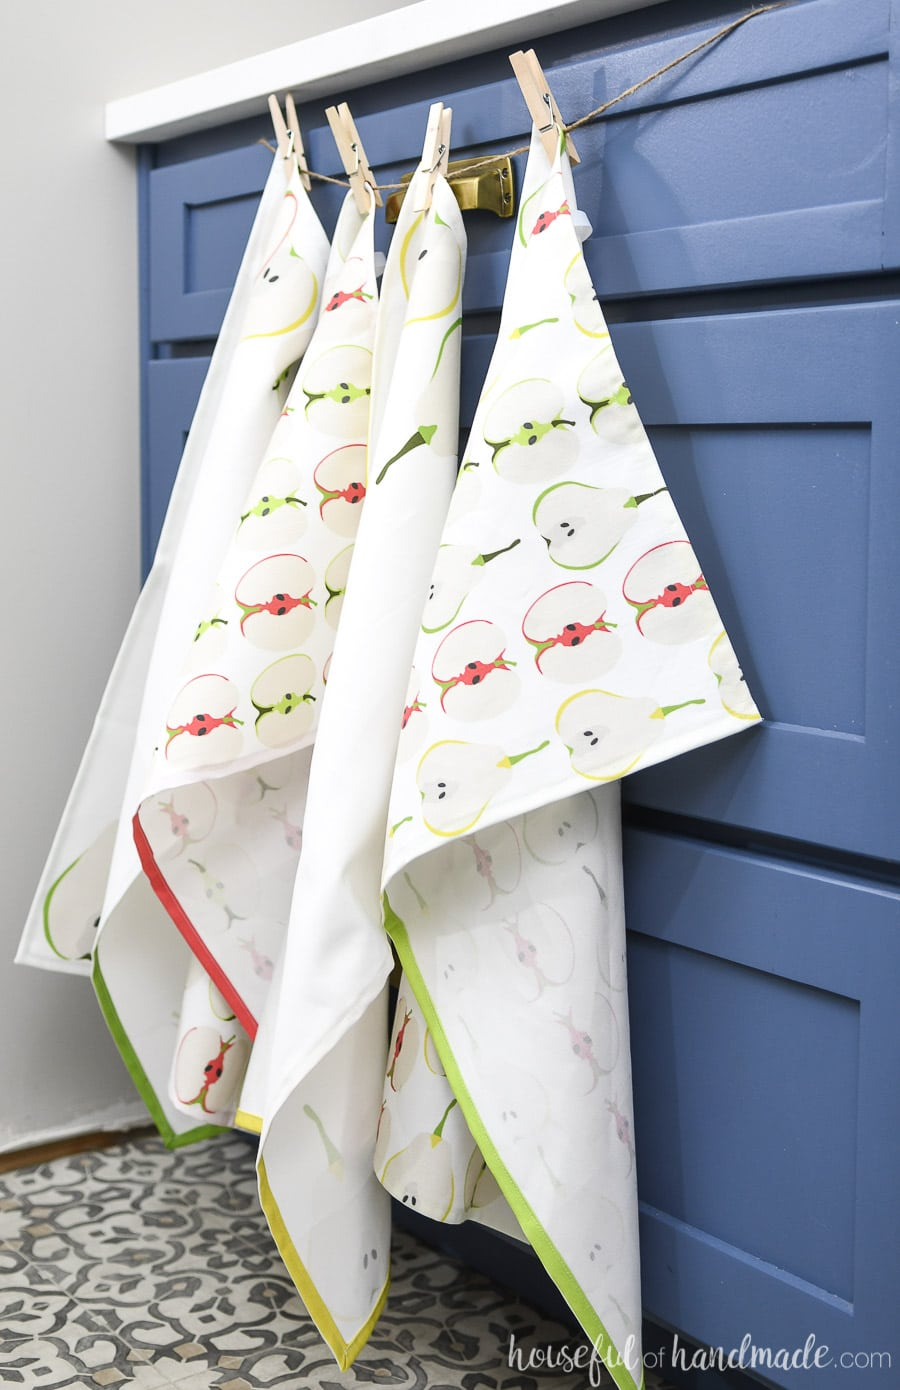 Four decorative fall tea towels hanging over kitchen cabinets.